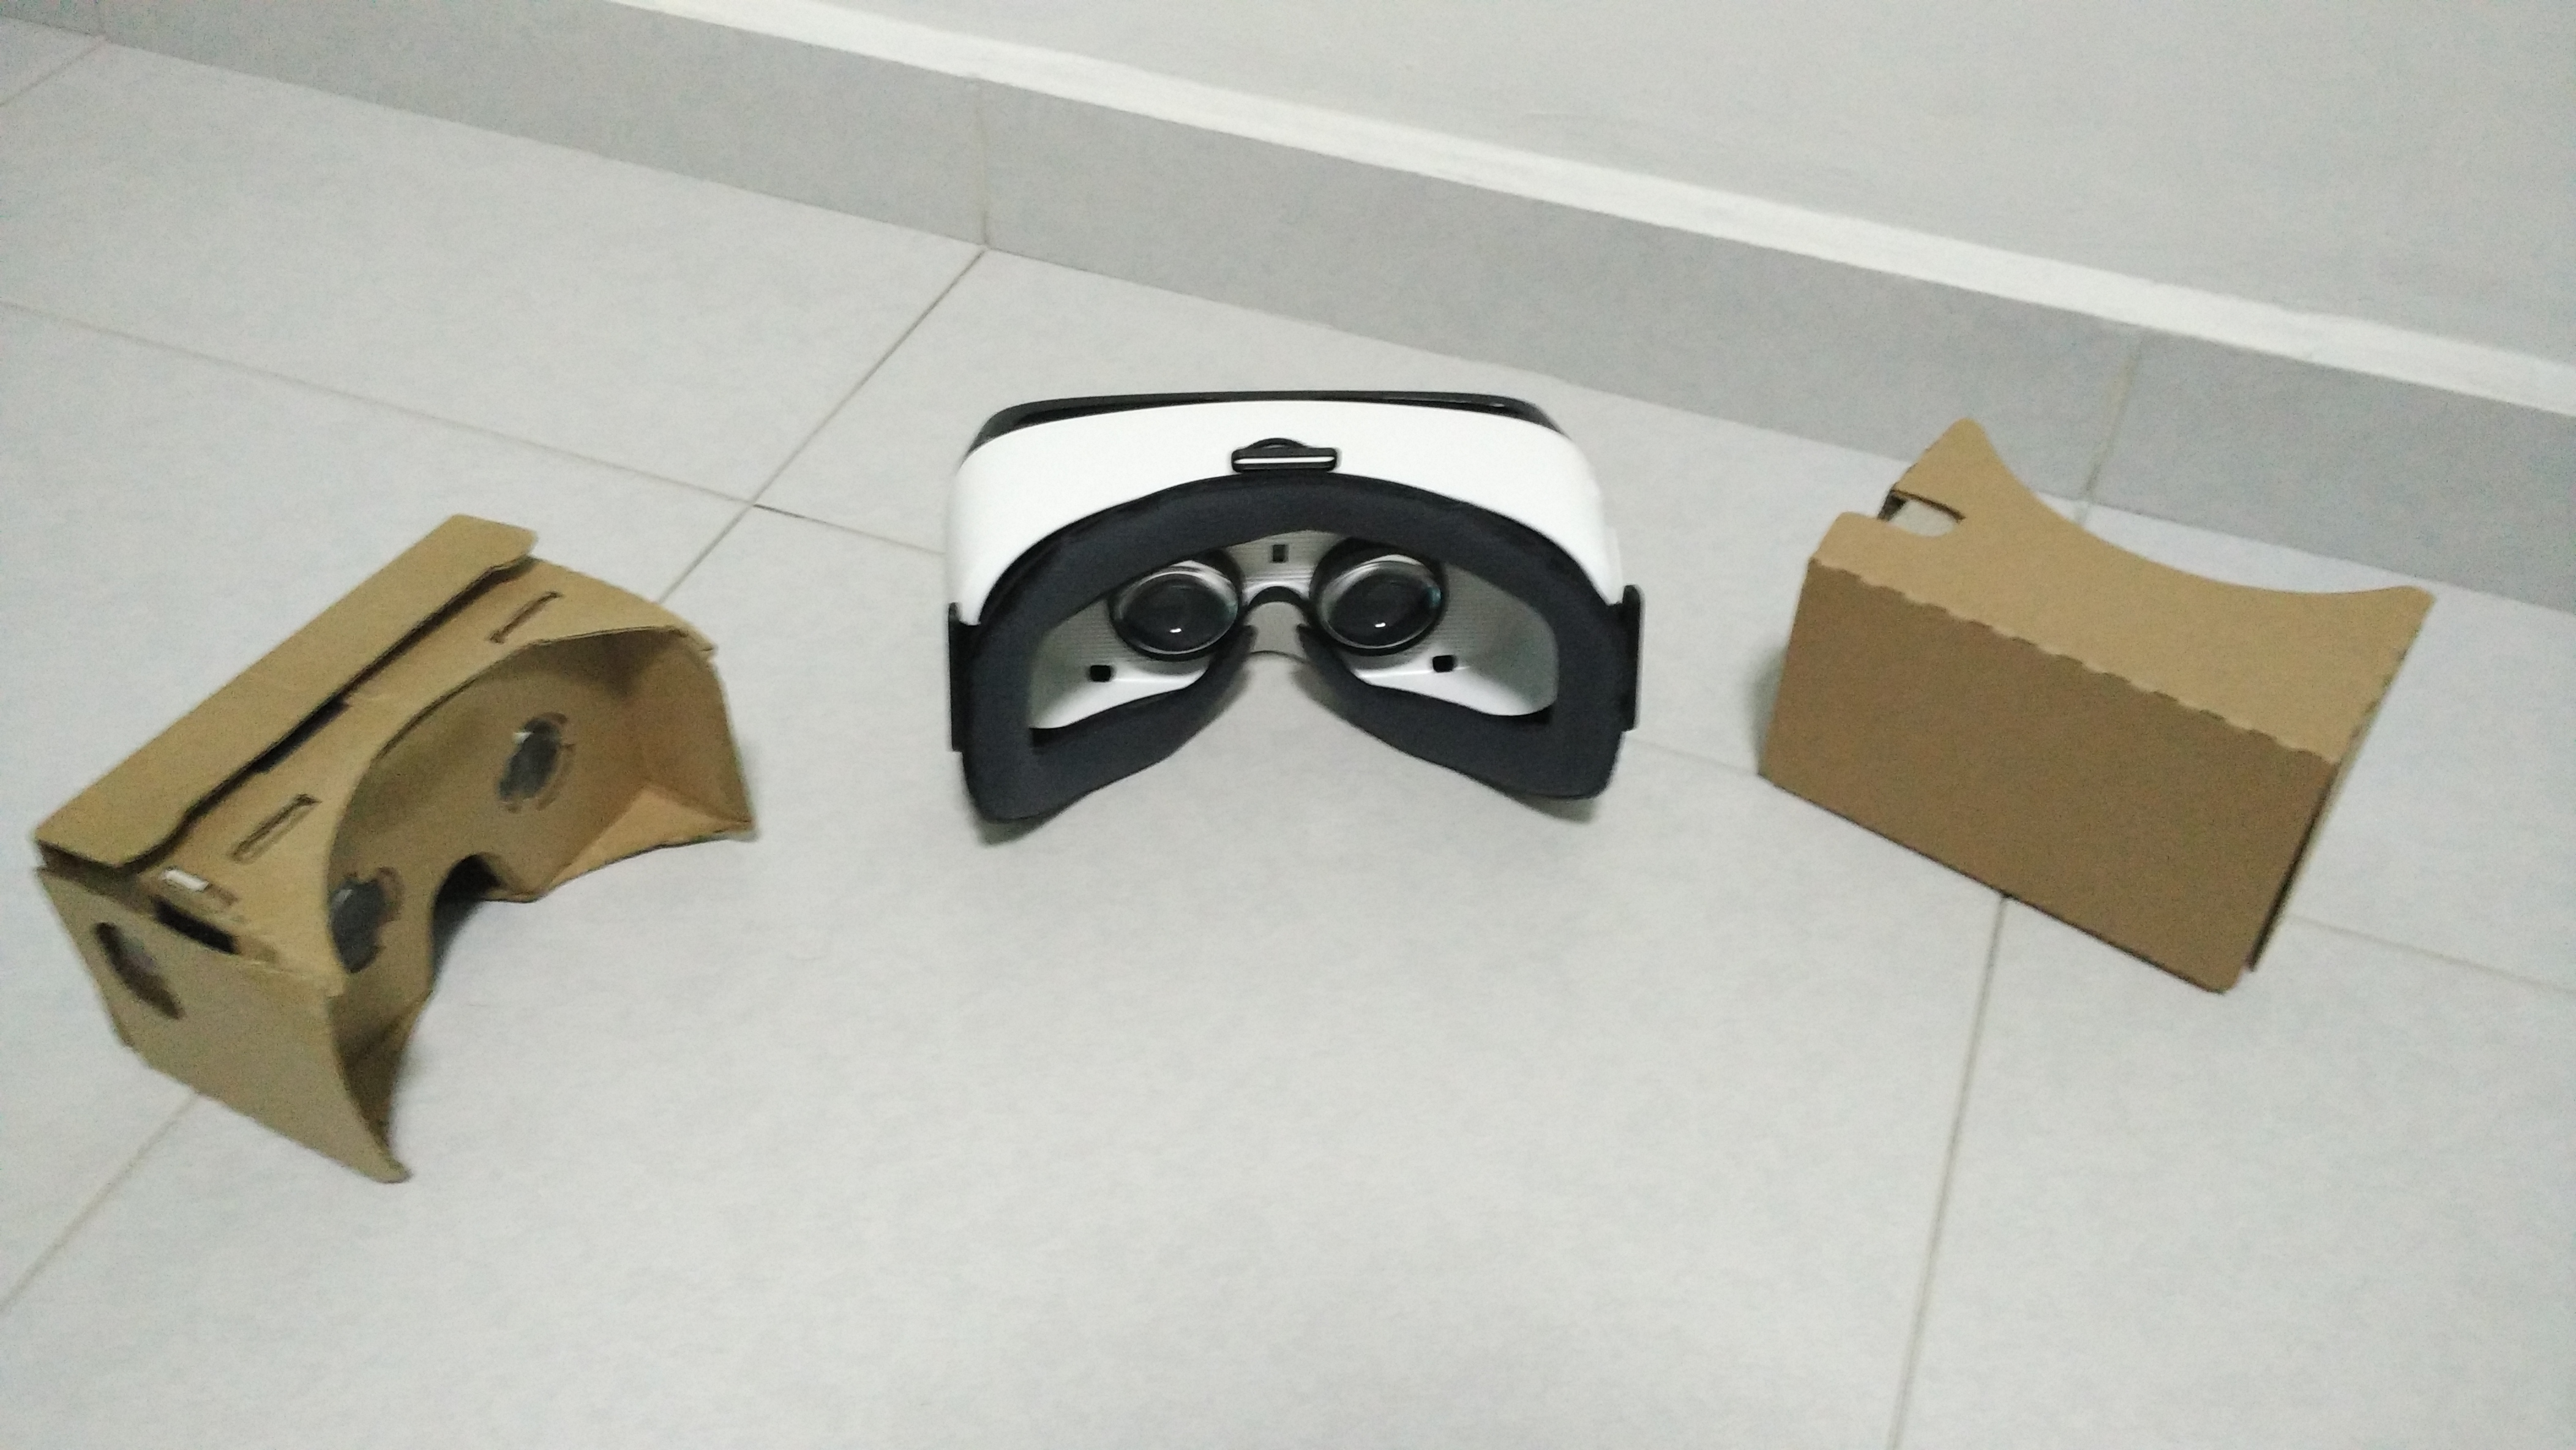 VR Head Mounted Display Part 2: Mobile VR